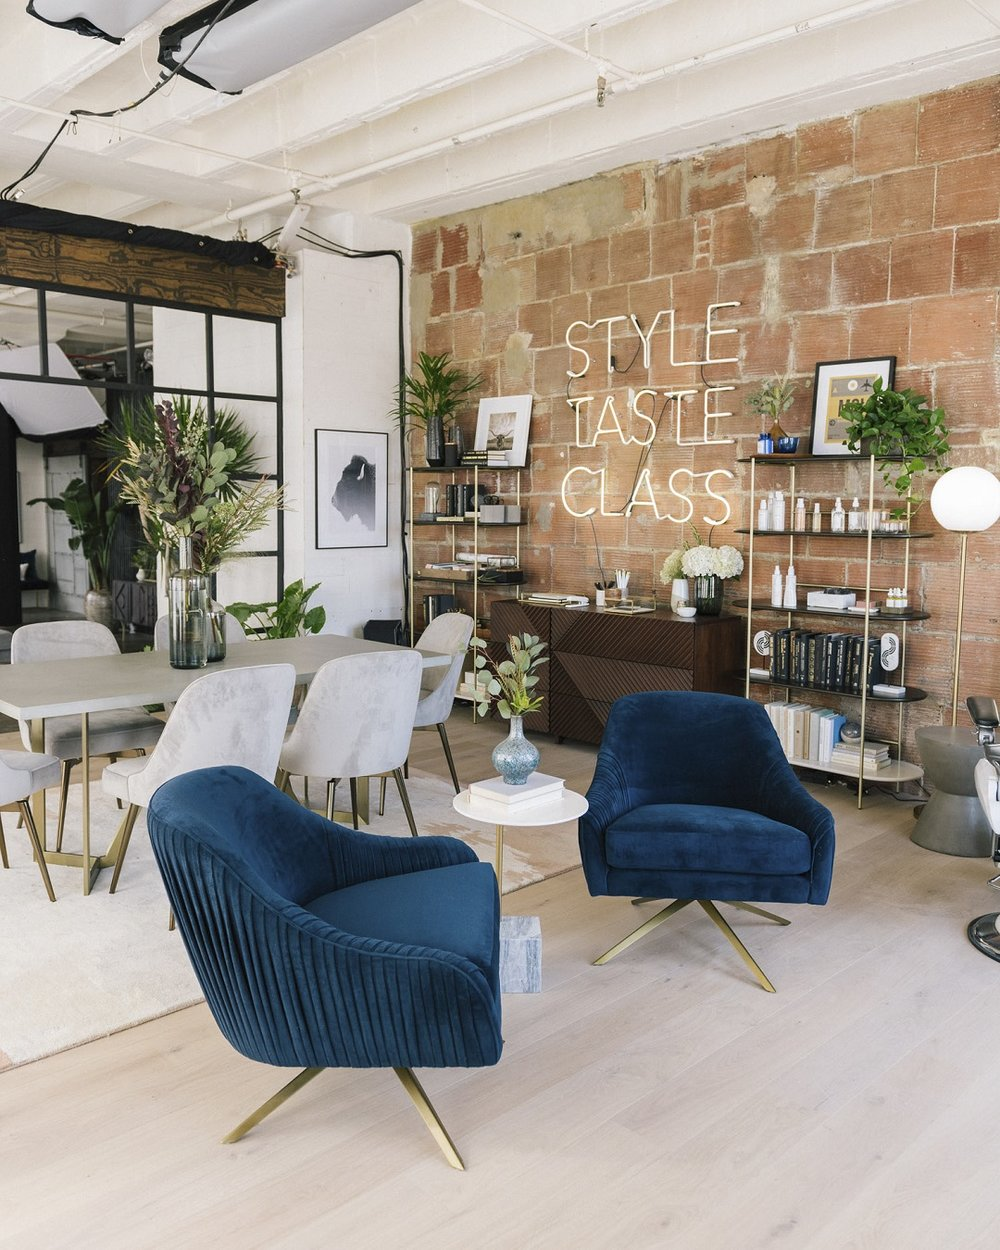 The Nordroom - Queer Eye's New Loft In Collaboration With West Elm